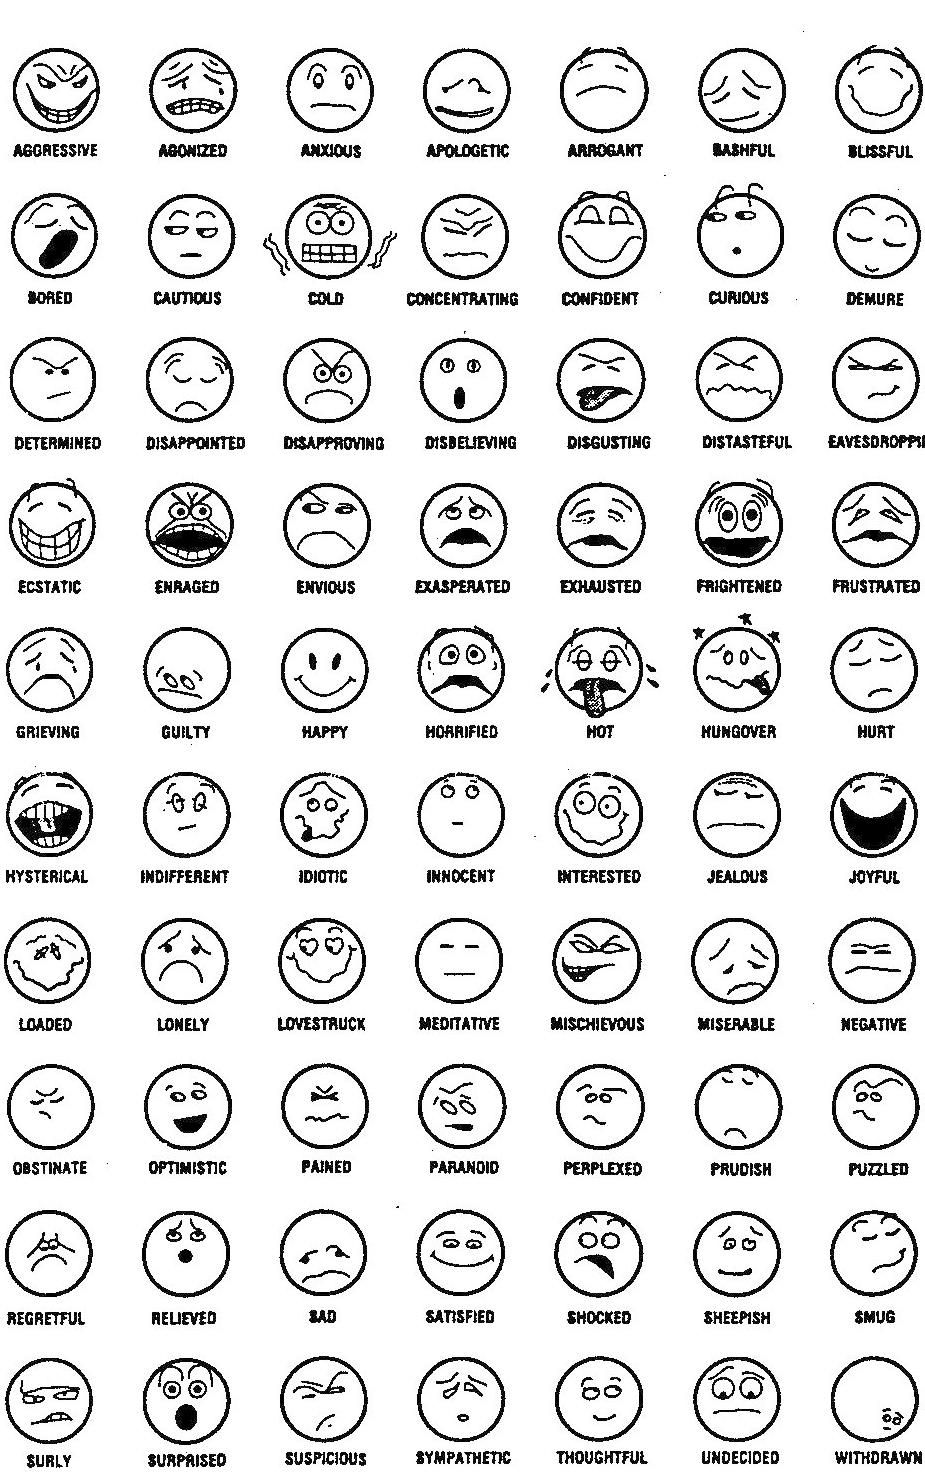 photo regarding Feelings Chart Printable named Pin via Carol Kvande upon Psychological conditioning Sensation faces